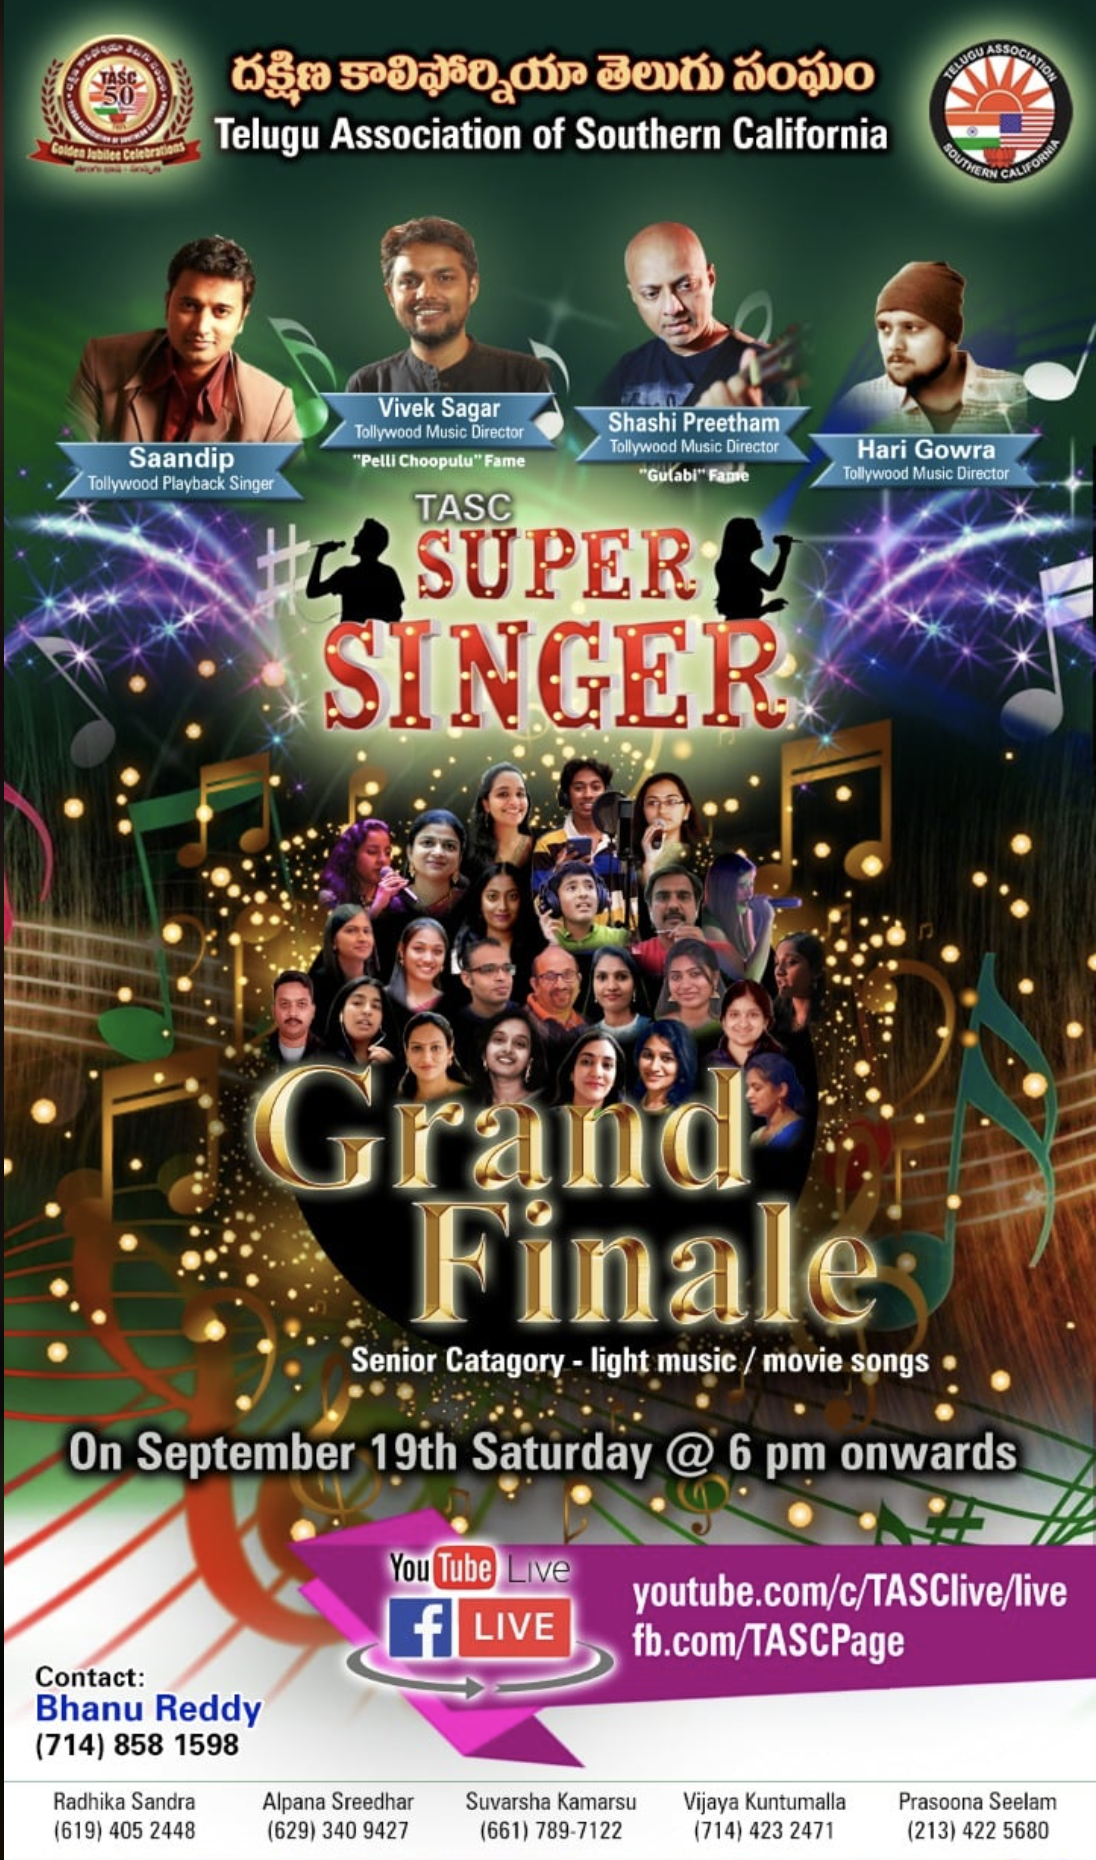 TASC Super Singer Grand Finale